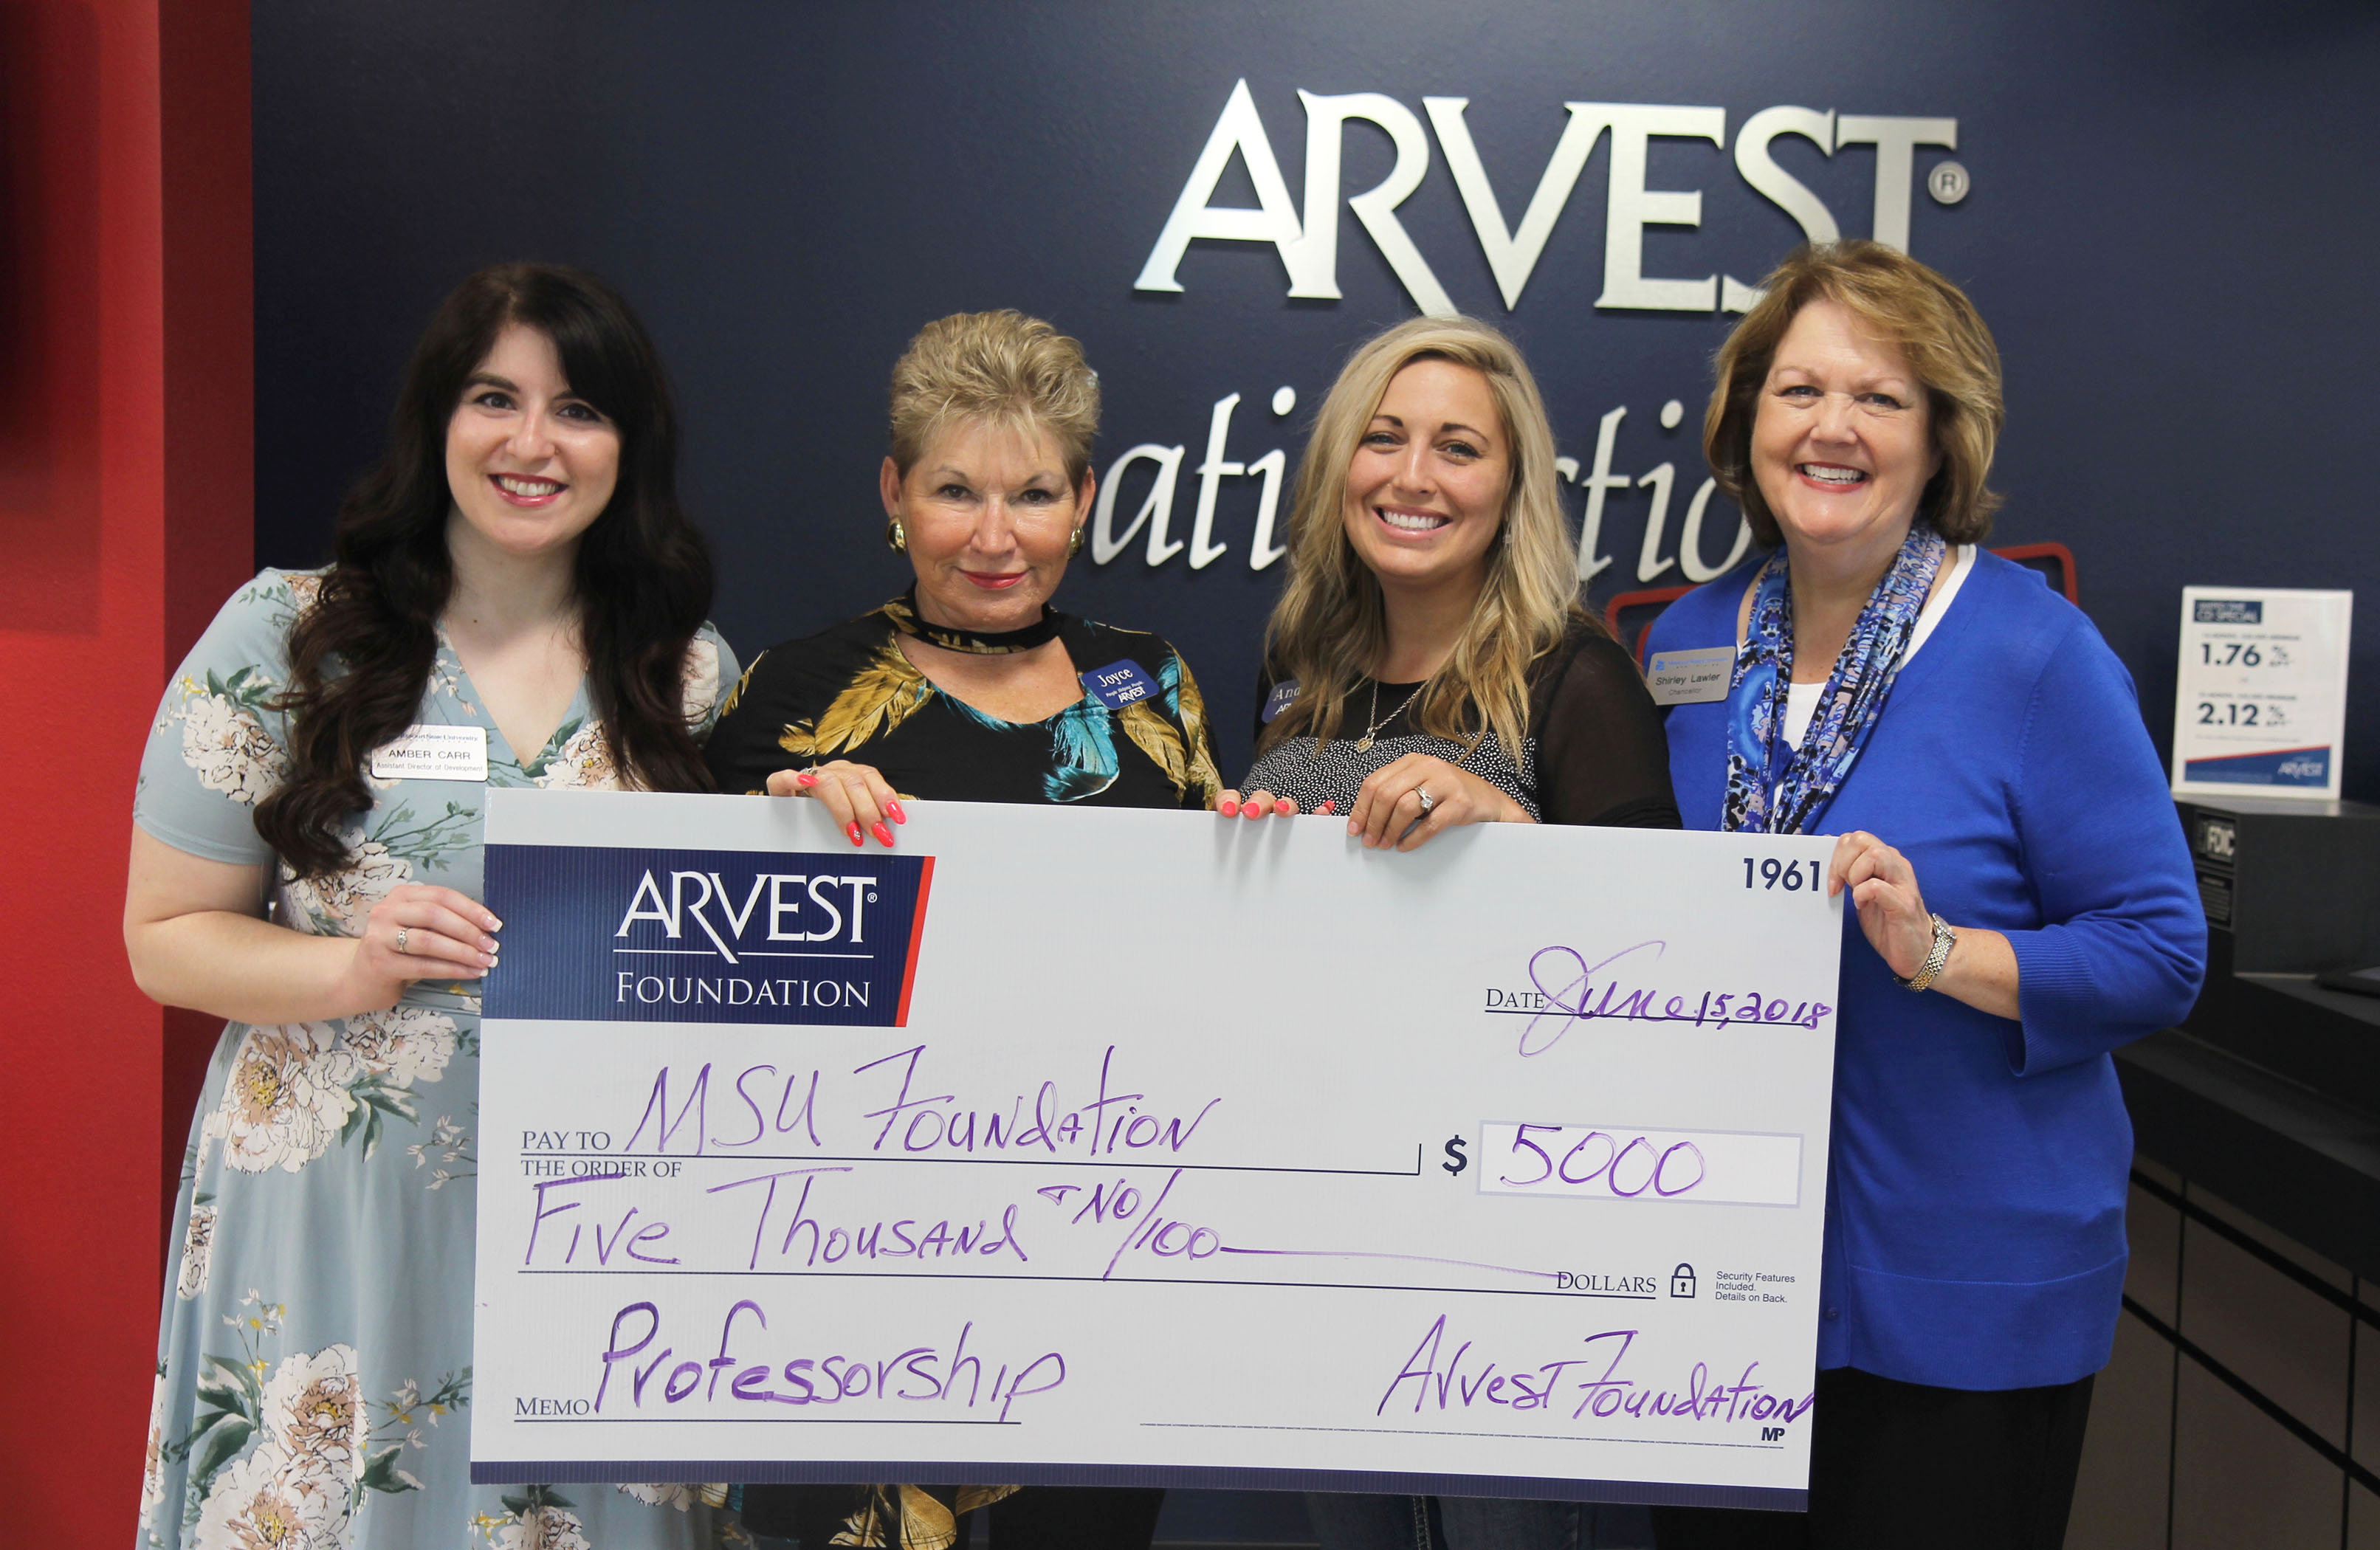 From left are Missouri State-West Plains Assistant Director of Development Amber Carr, Arvest Bank Market President Joyce James and Branch Sales Manager Andrea Crews, and Missouri State-West Plains Chancellor Shirley Lawler. (Missouri State-West Plains Photo)